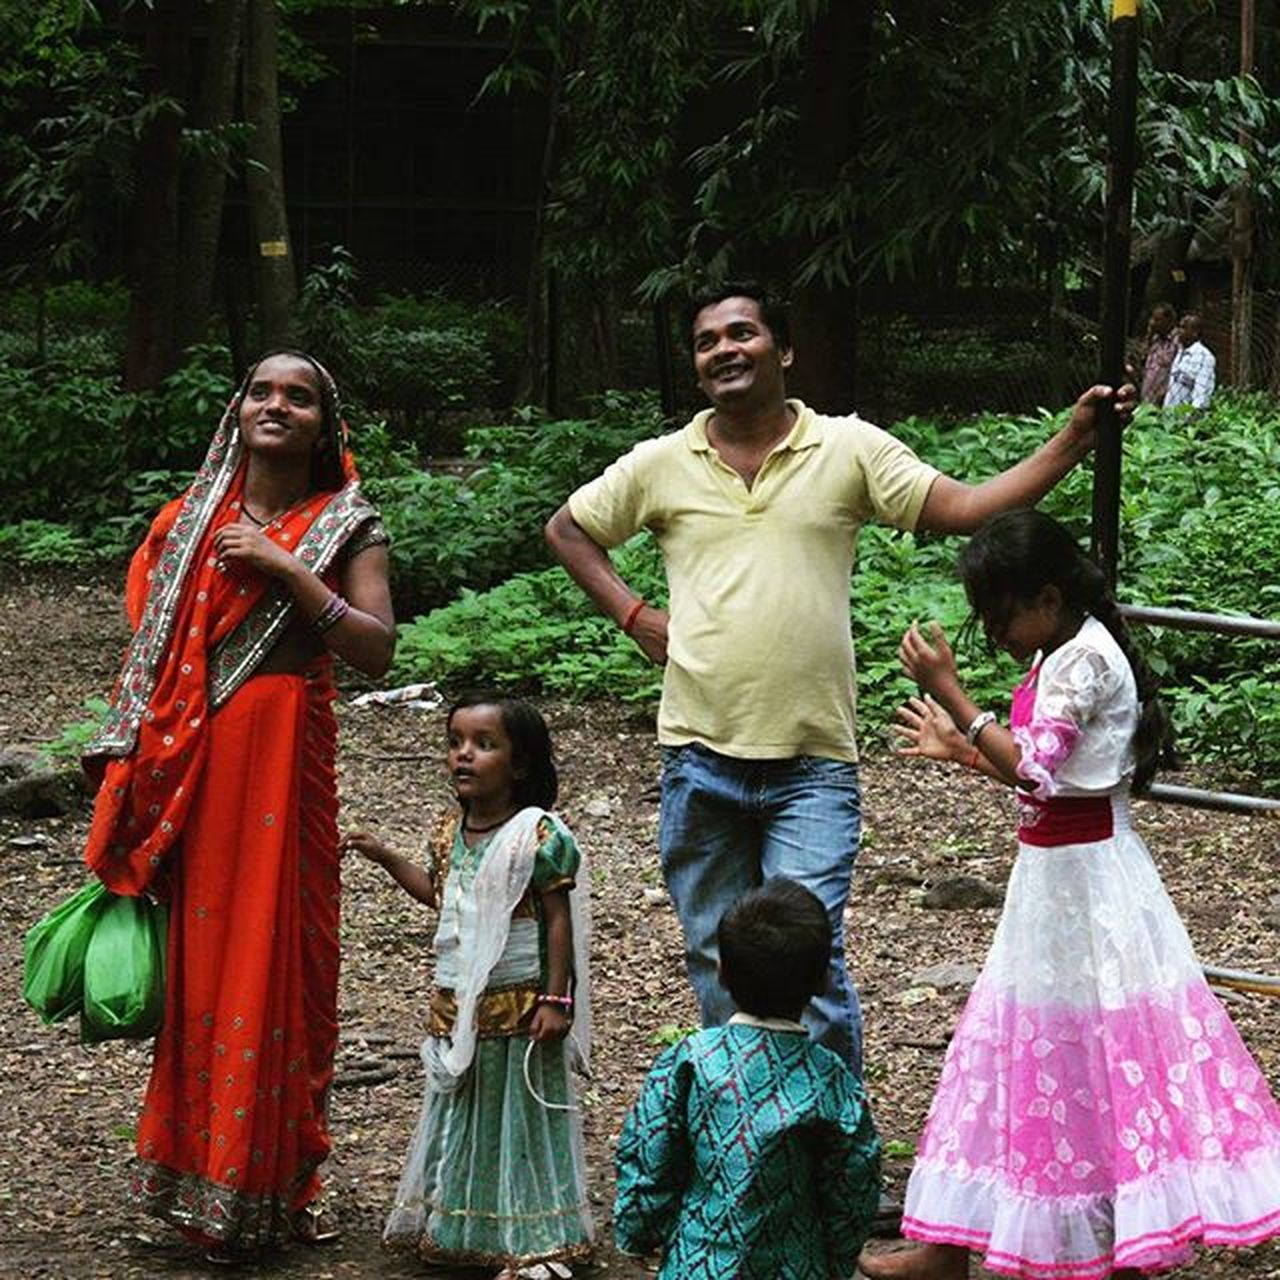 A family which plays together stays together! 😁😁 . . . Whpfilltheframe Planhatke Thehatke Ip_meet Ip_meetmumbai Indiapictures _soi Oyemyclick Indiaclicks Storiesofindia Simplicityeverywhere Vagrantdiaries Mymumbai Everydaymumbai Everydayindia Subjectsinmysquare Nothingisordinary Jj  Jj_forum Framedeuphoria Intertwinedrealms Exs_people Maibhisadakchap WHPexpressions